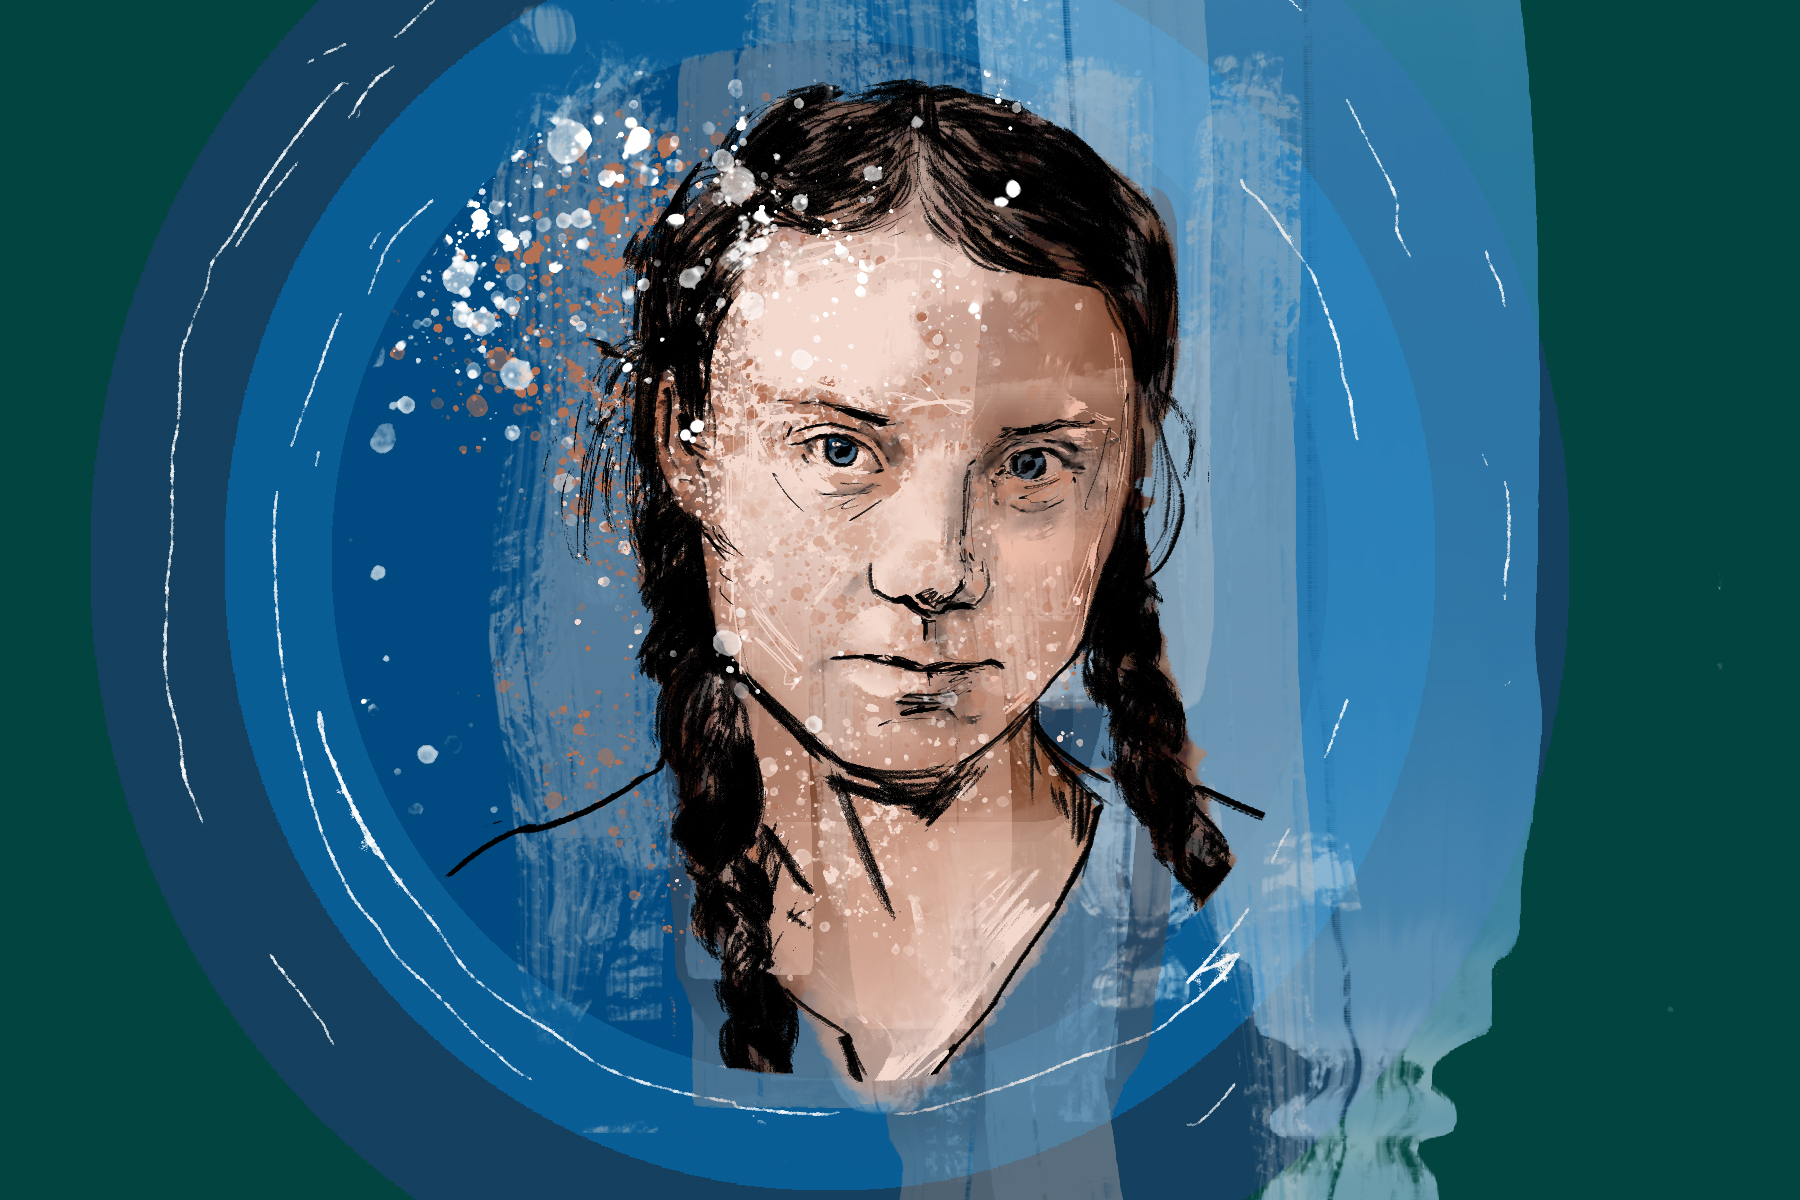 Illustration of Greta Thunberg by Marcus Escobar for an article on I Am Greta